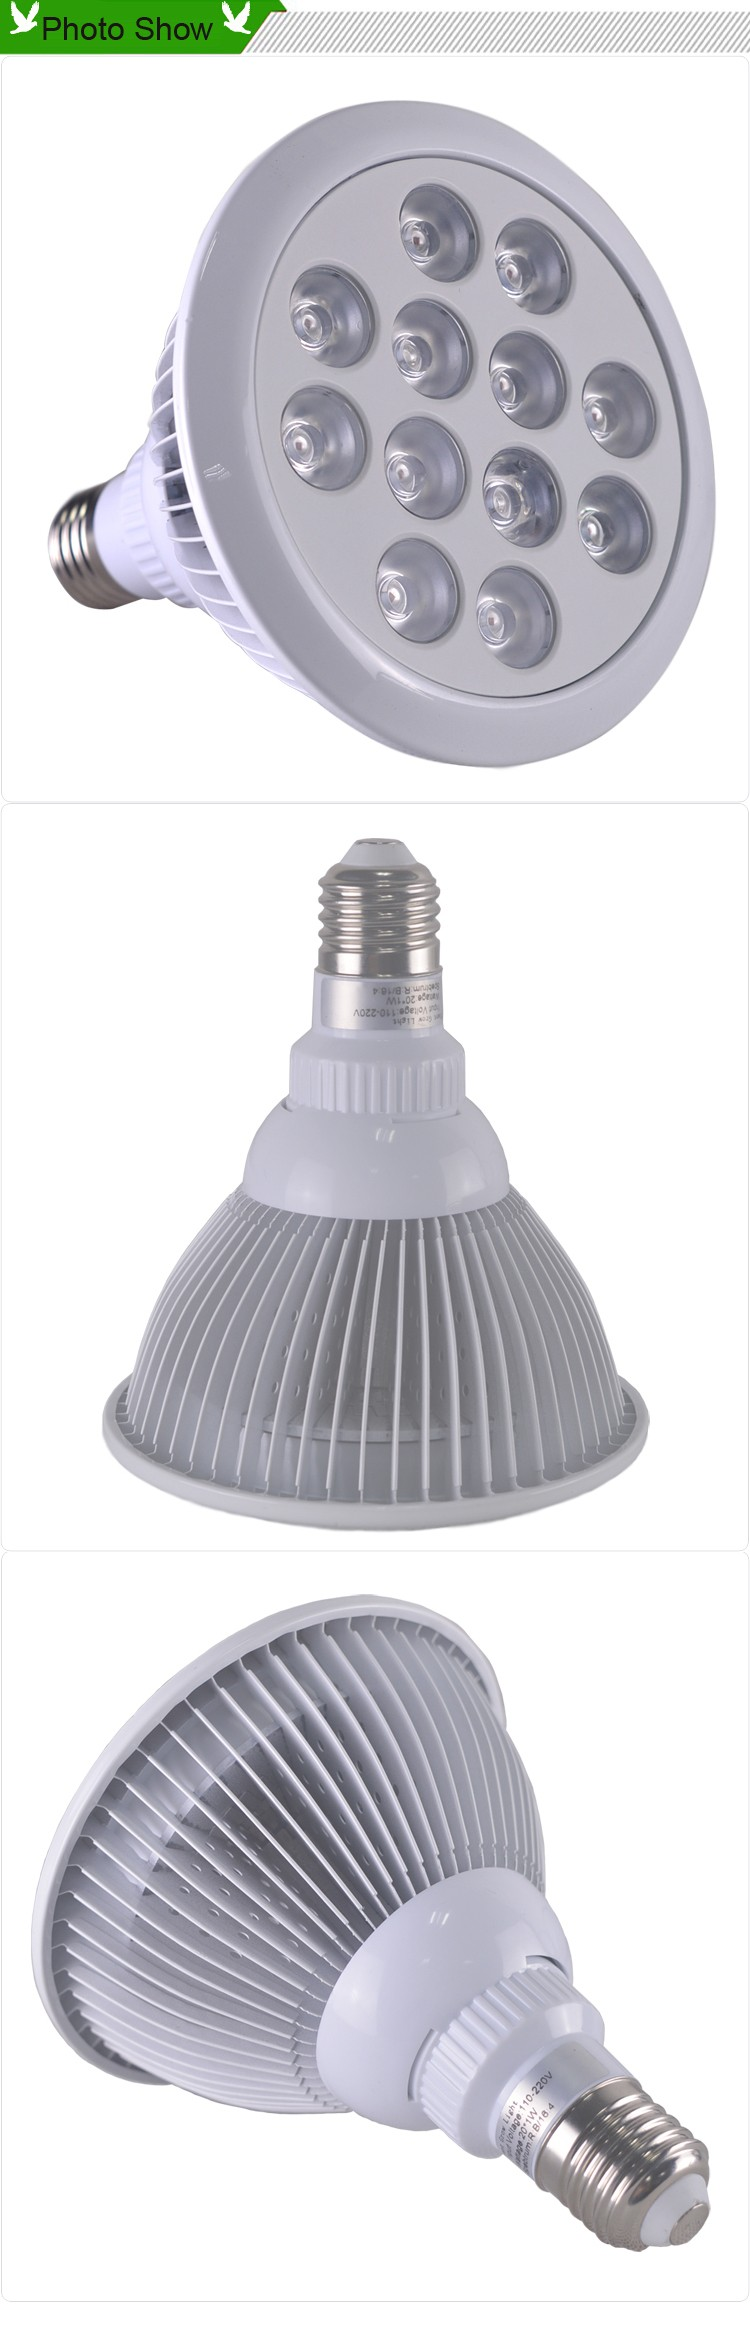 Low cost cheap greenhouse equipment 36w e27 w26 led grow light bulb buy led poultry light Led light bulbs cost